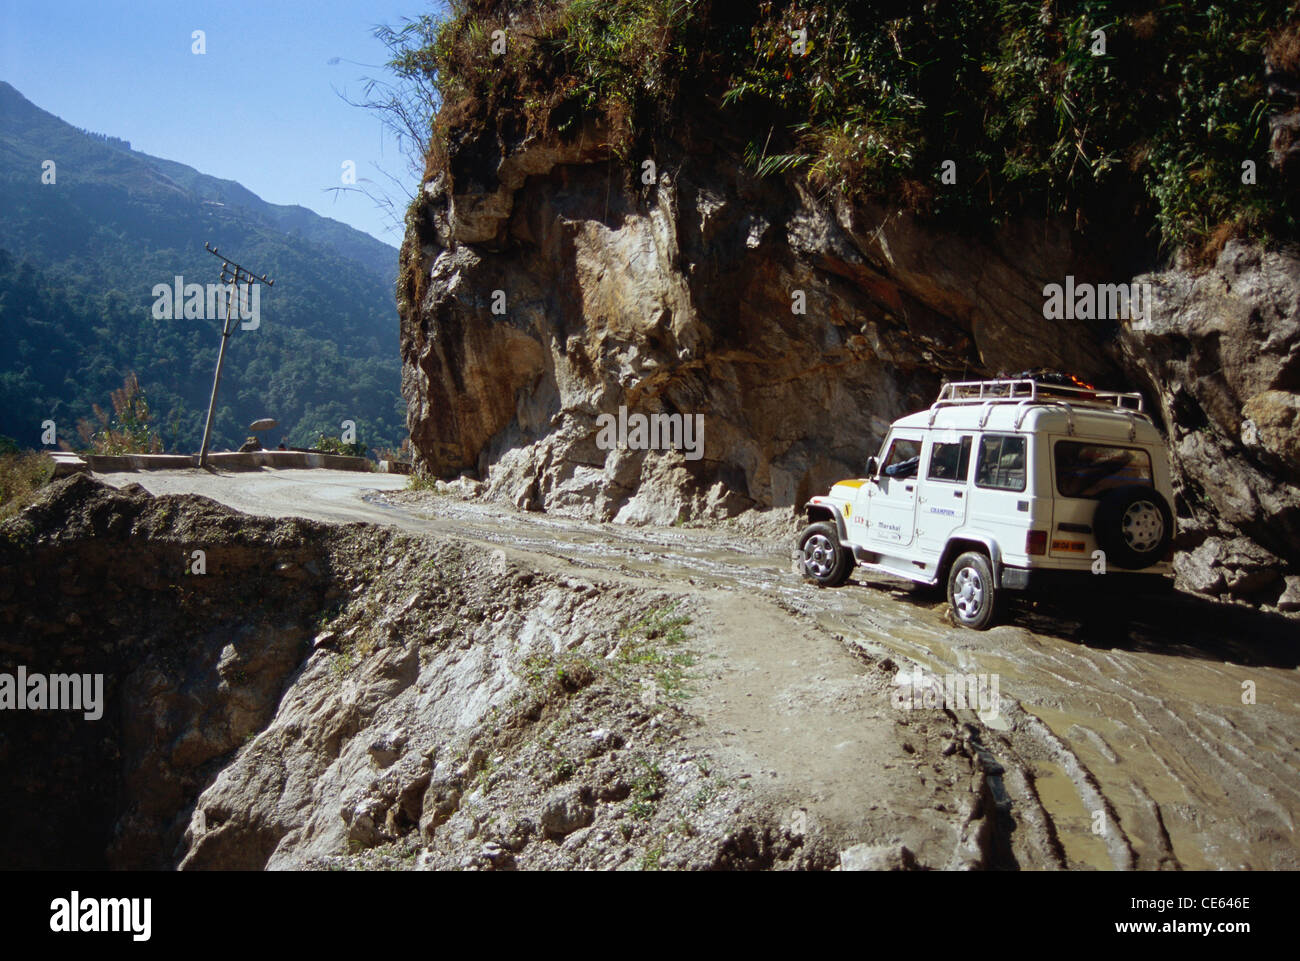 http://c8.alamy.com/comp/CE646E/four-wheel-drive-car-on-mountain-road-to-lachung-sikkim-india-CE646E.jpg